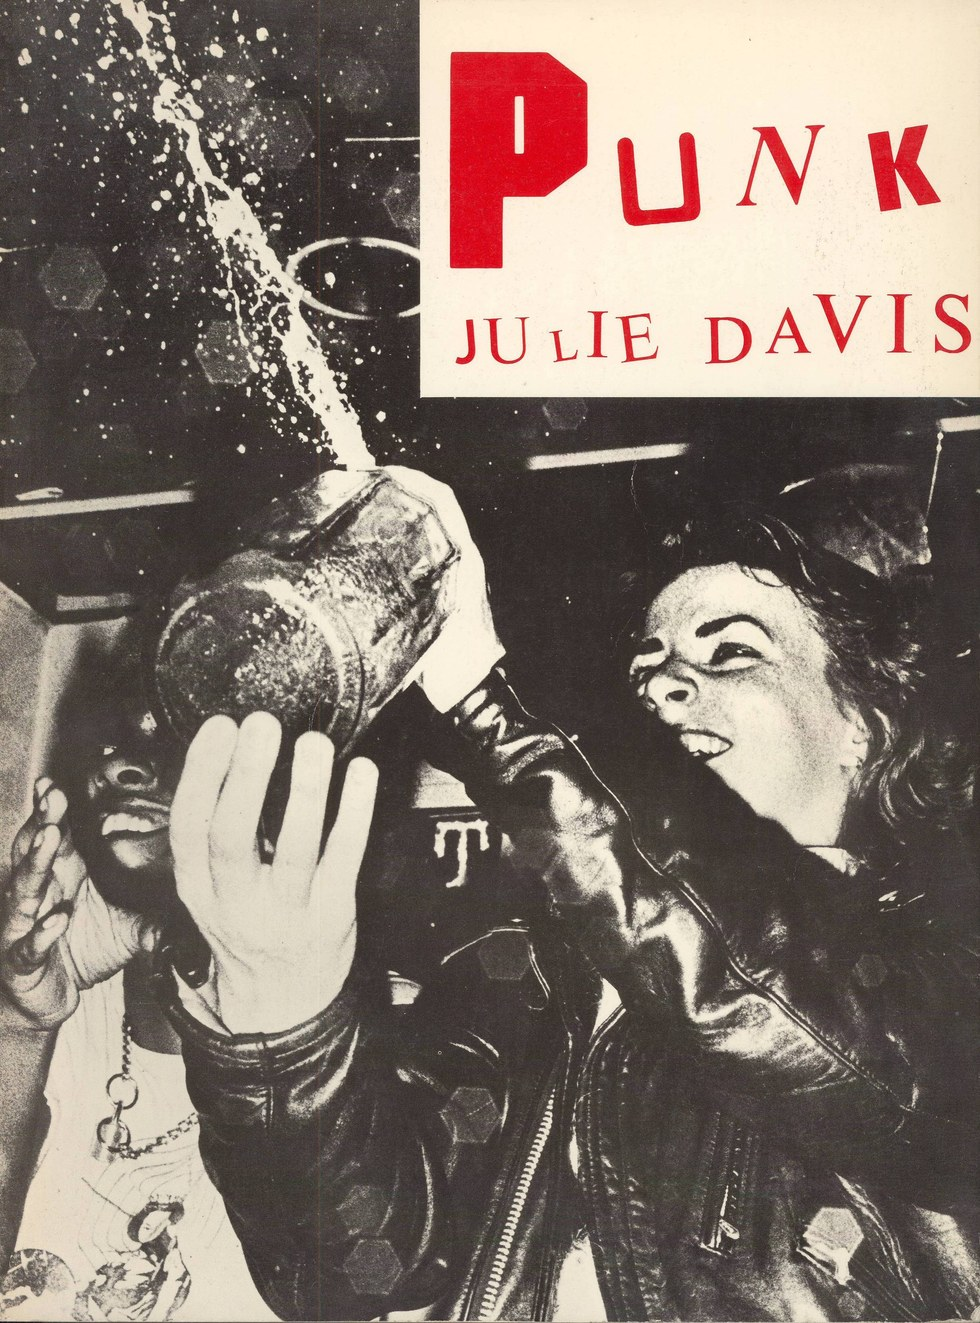 Punk by Julie Davis